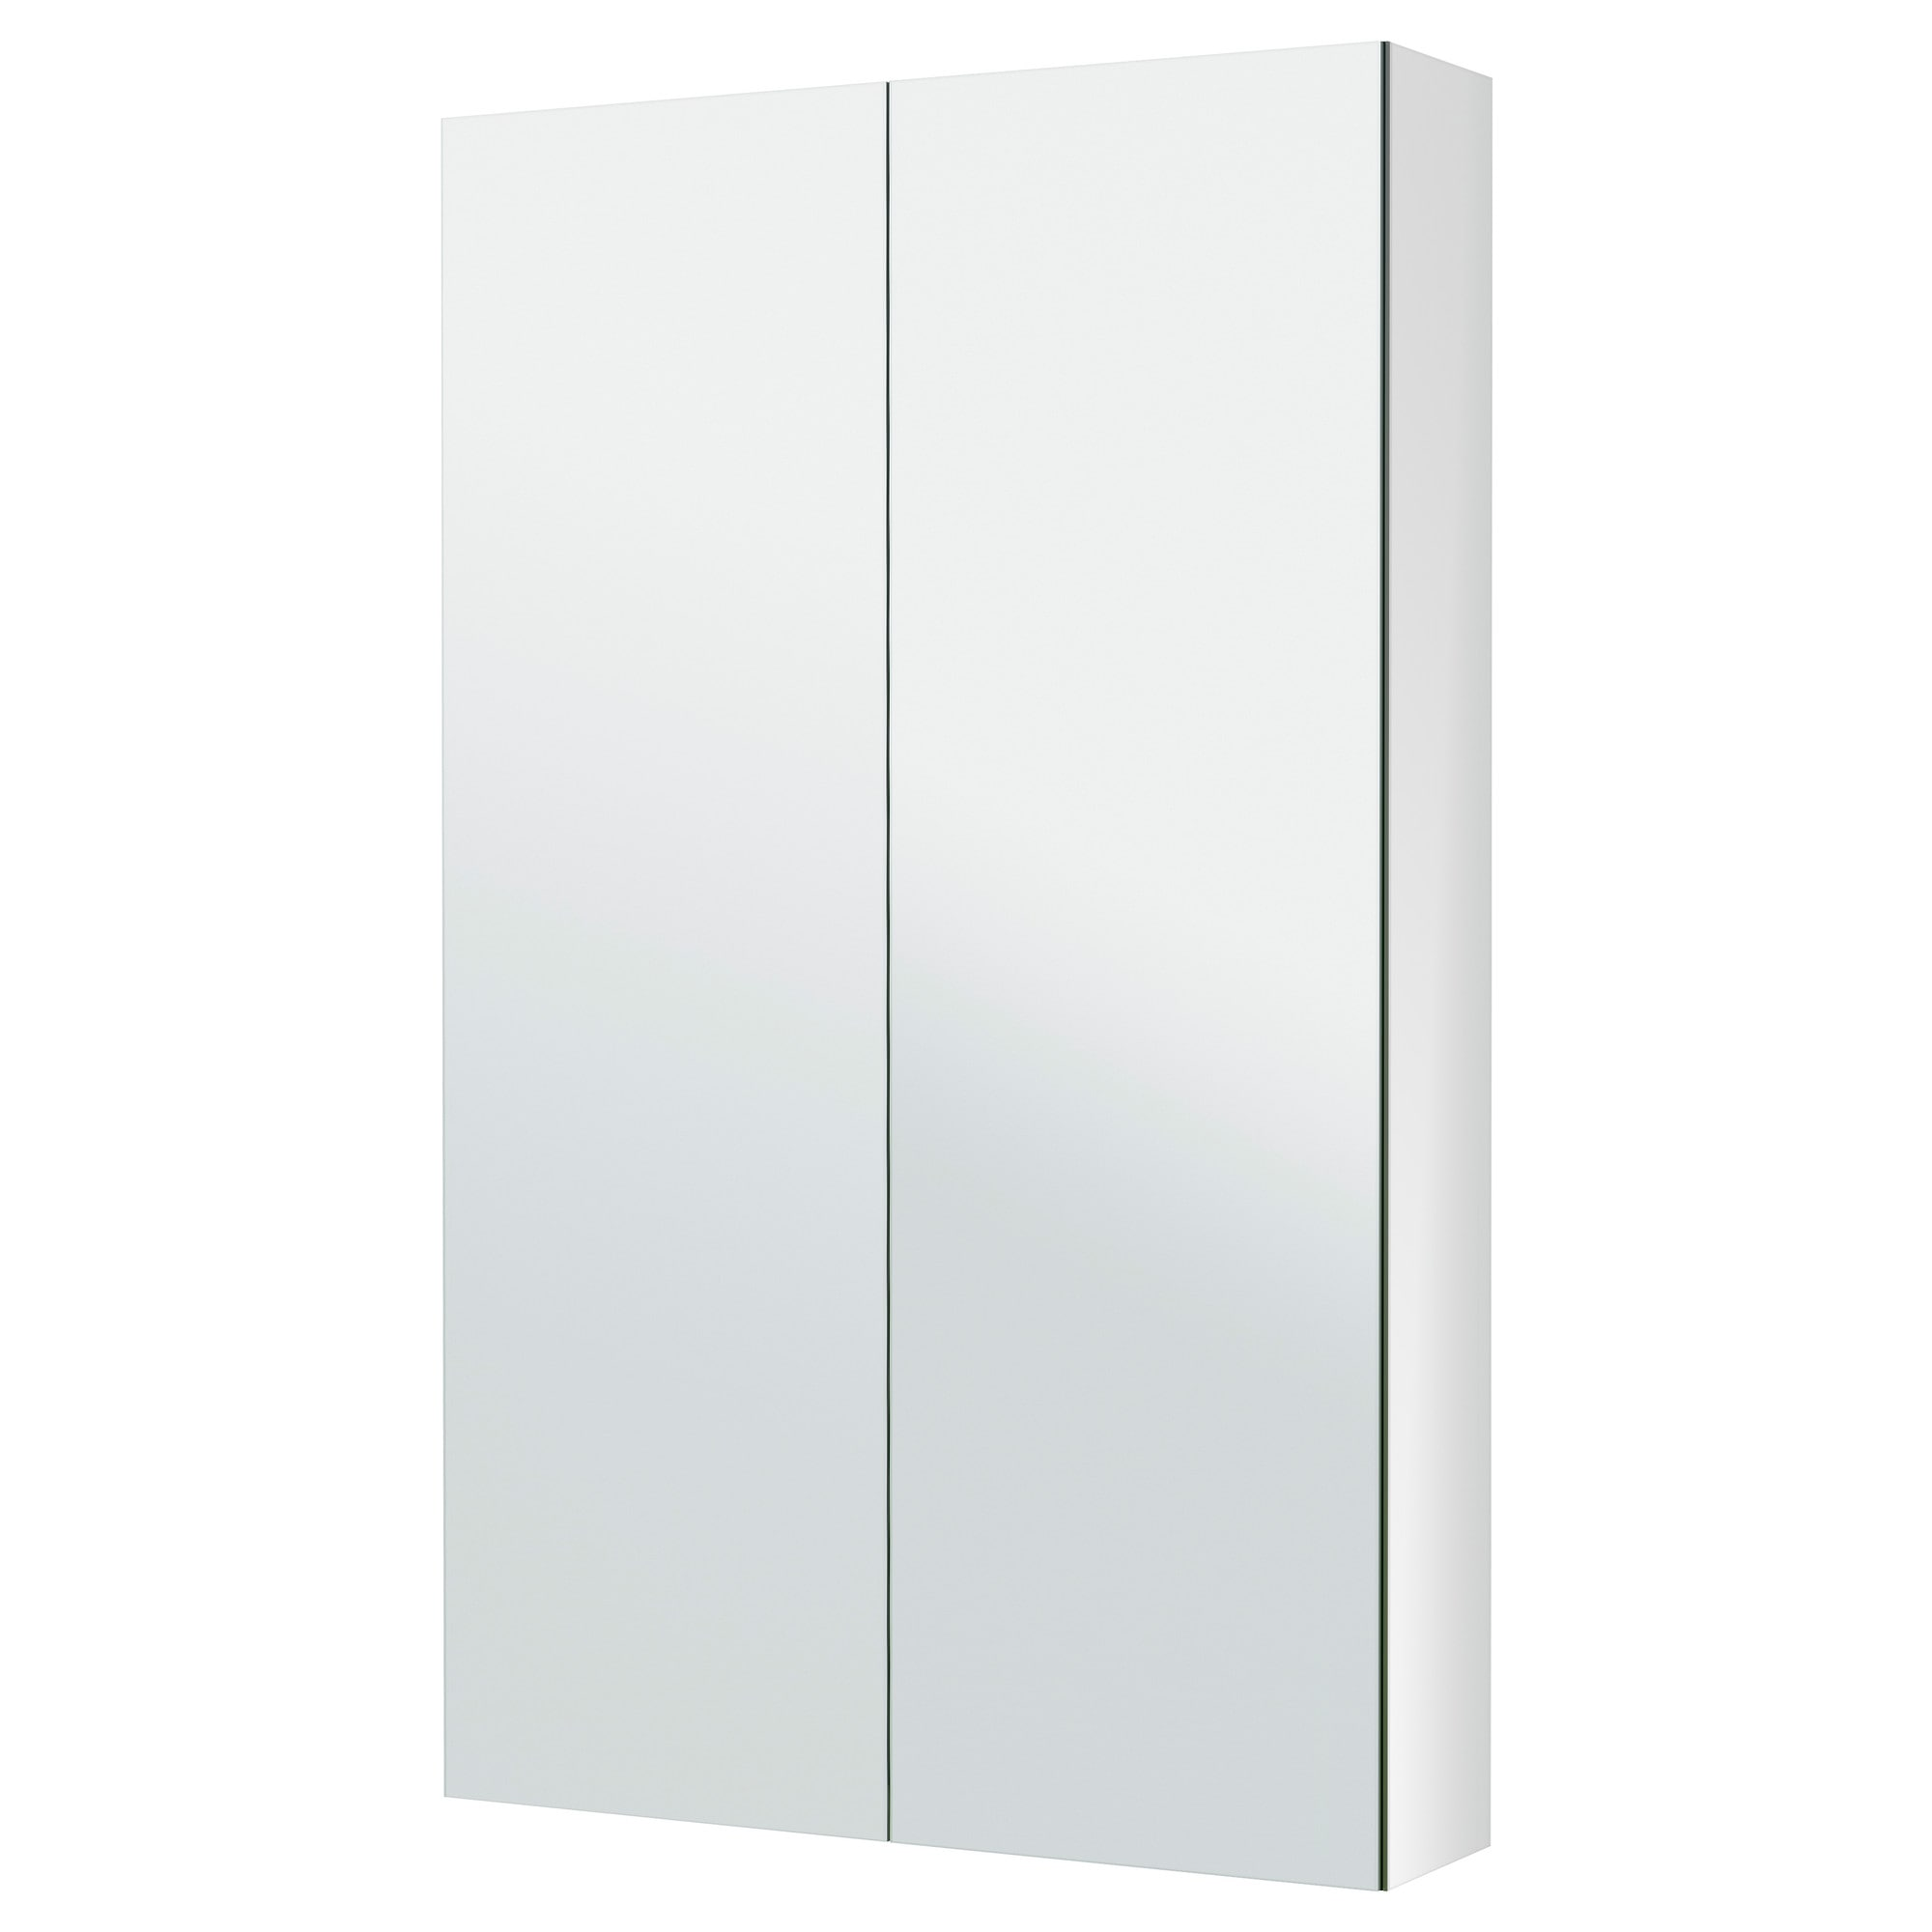 Ikea Ludwigsburg Kinderzimmer ~ Tall Bathroom Cabinets With Mirror ~ Mirrored Bathroom Cabinets  IKEA